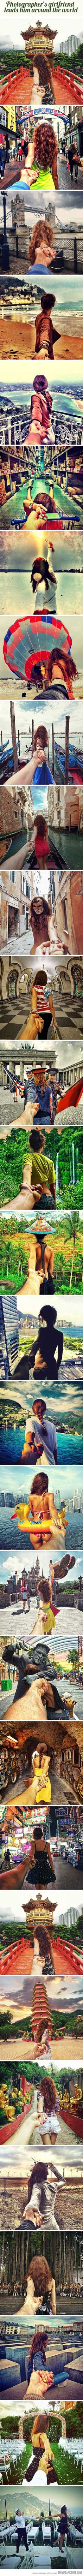 Photographer's girlfriend leads him around the world ~ travel-inspo.